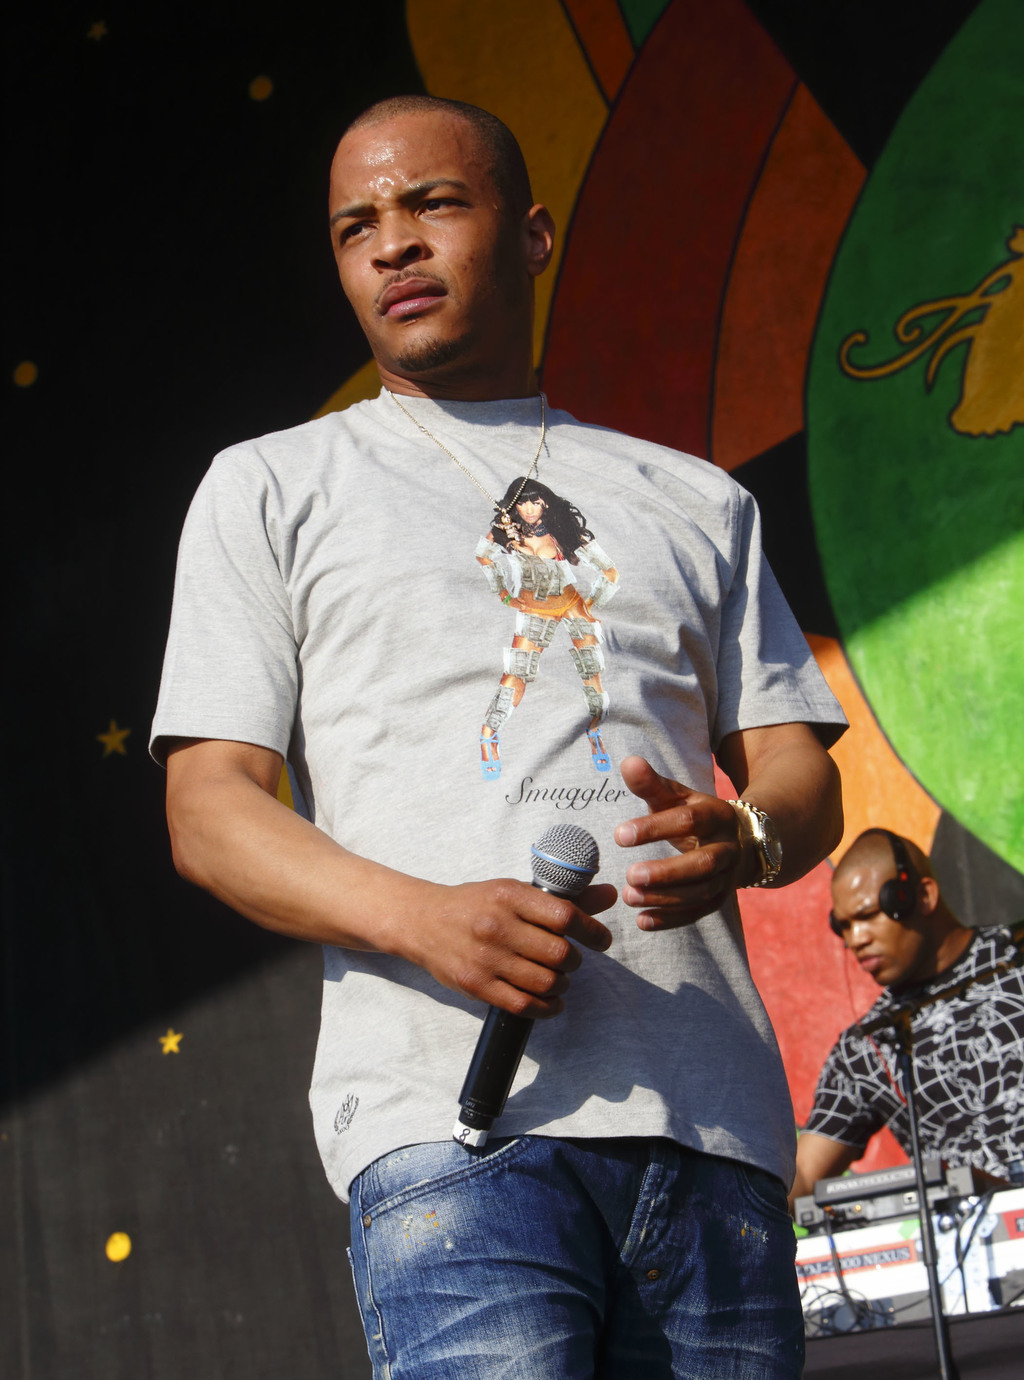 FILE - This May 2, 2015 file photo shows T. I. performing at the New Orleans Jazz & Heritage Festival in New Orleans. Motivated by the ...